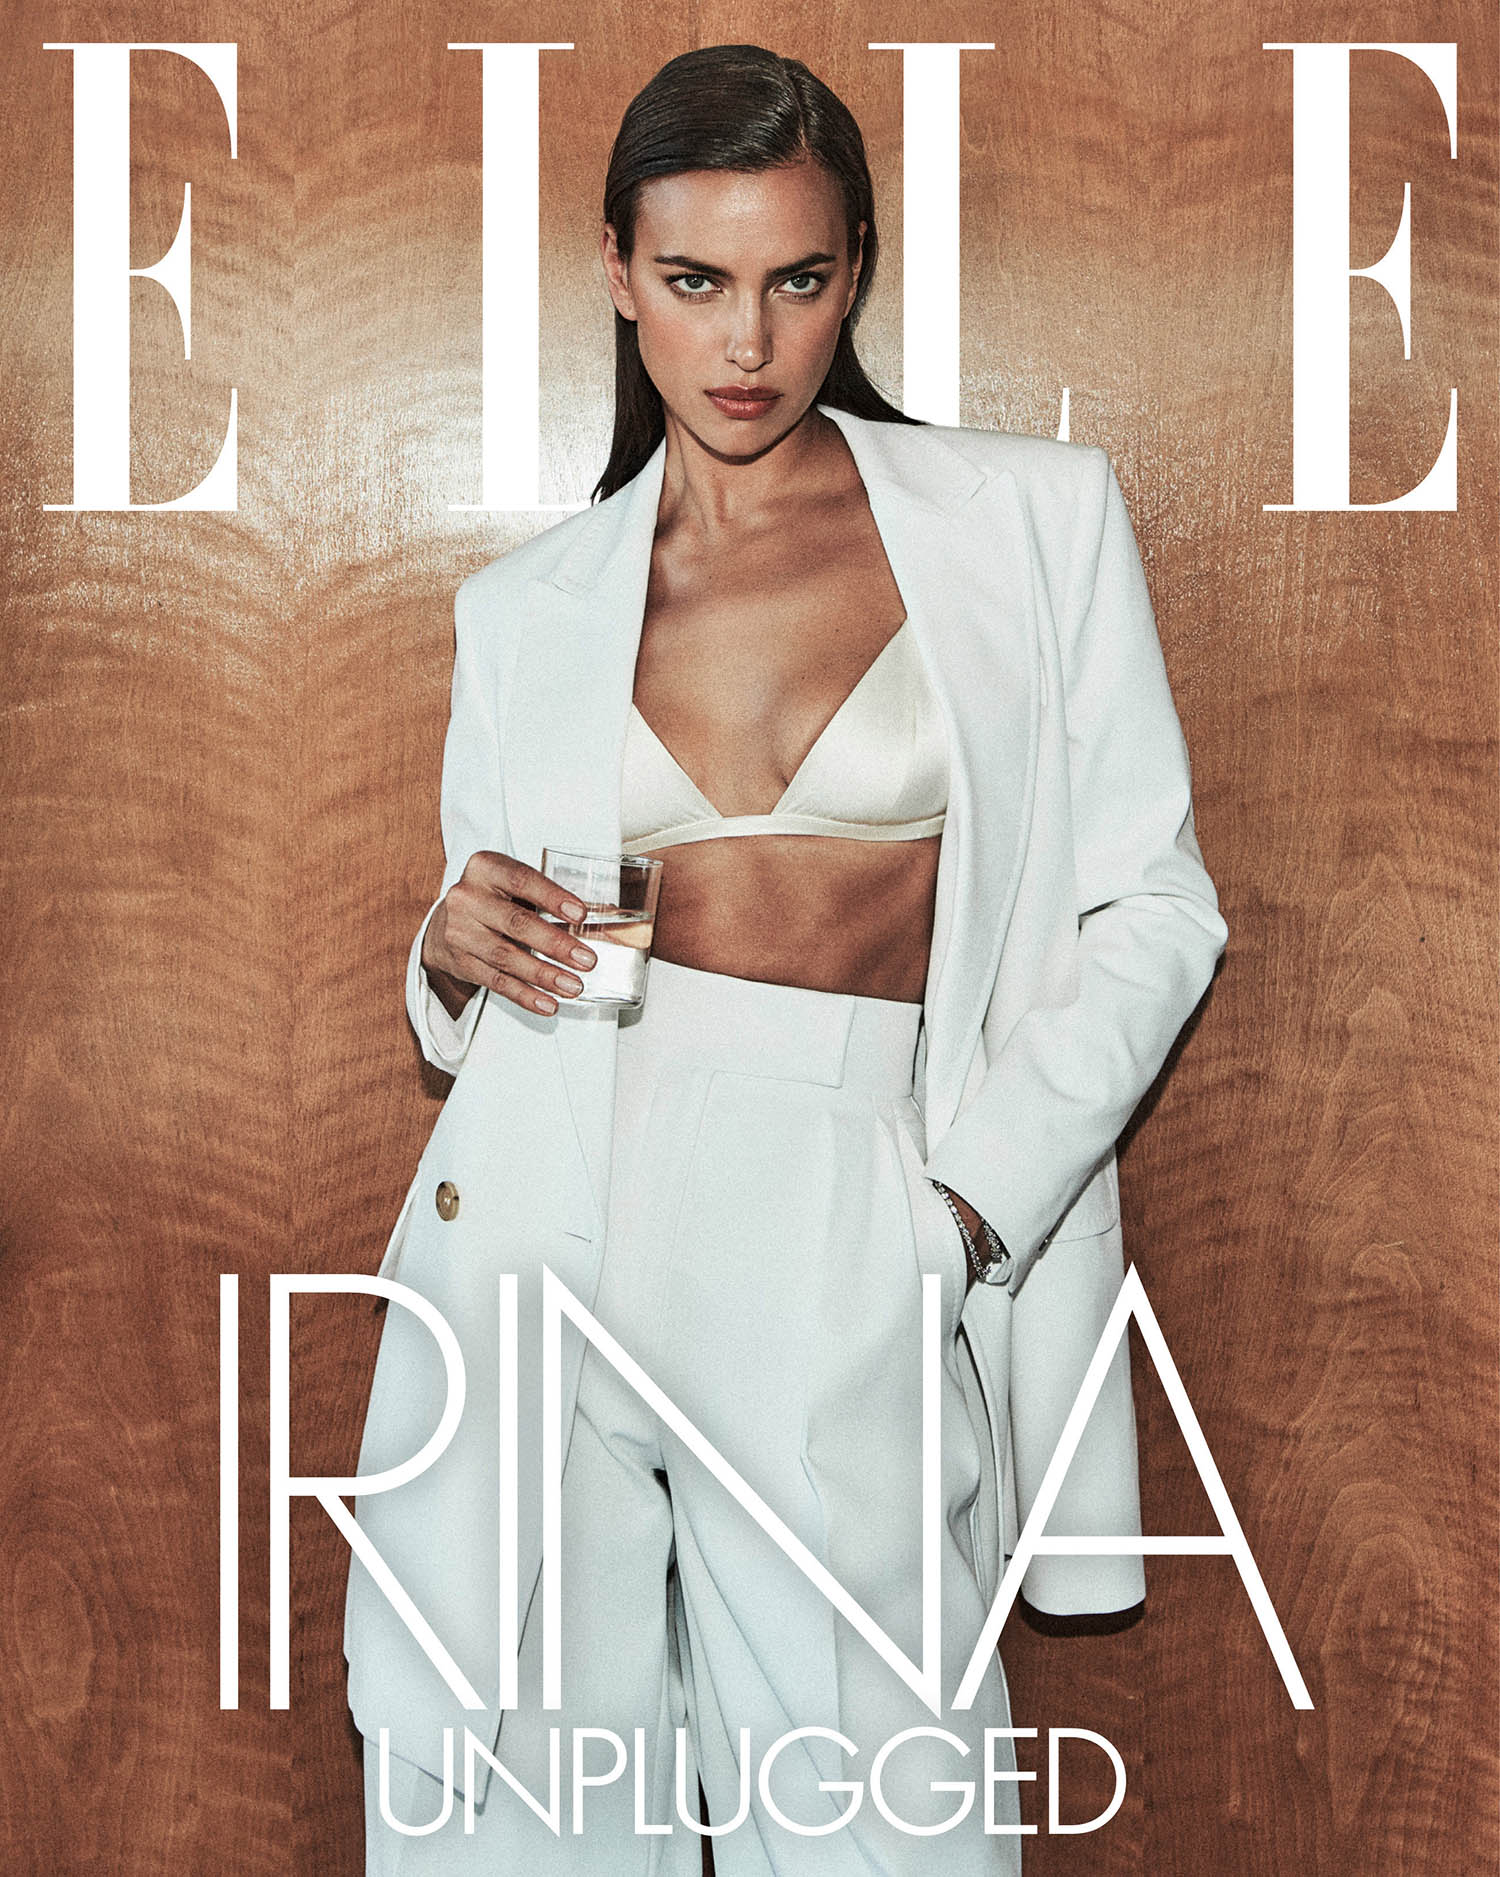 Irina Shayk covers Elle US March 2021 Digital Edition by Chris Colls